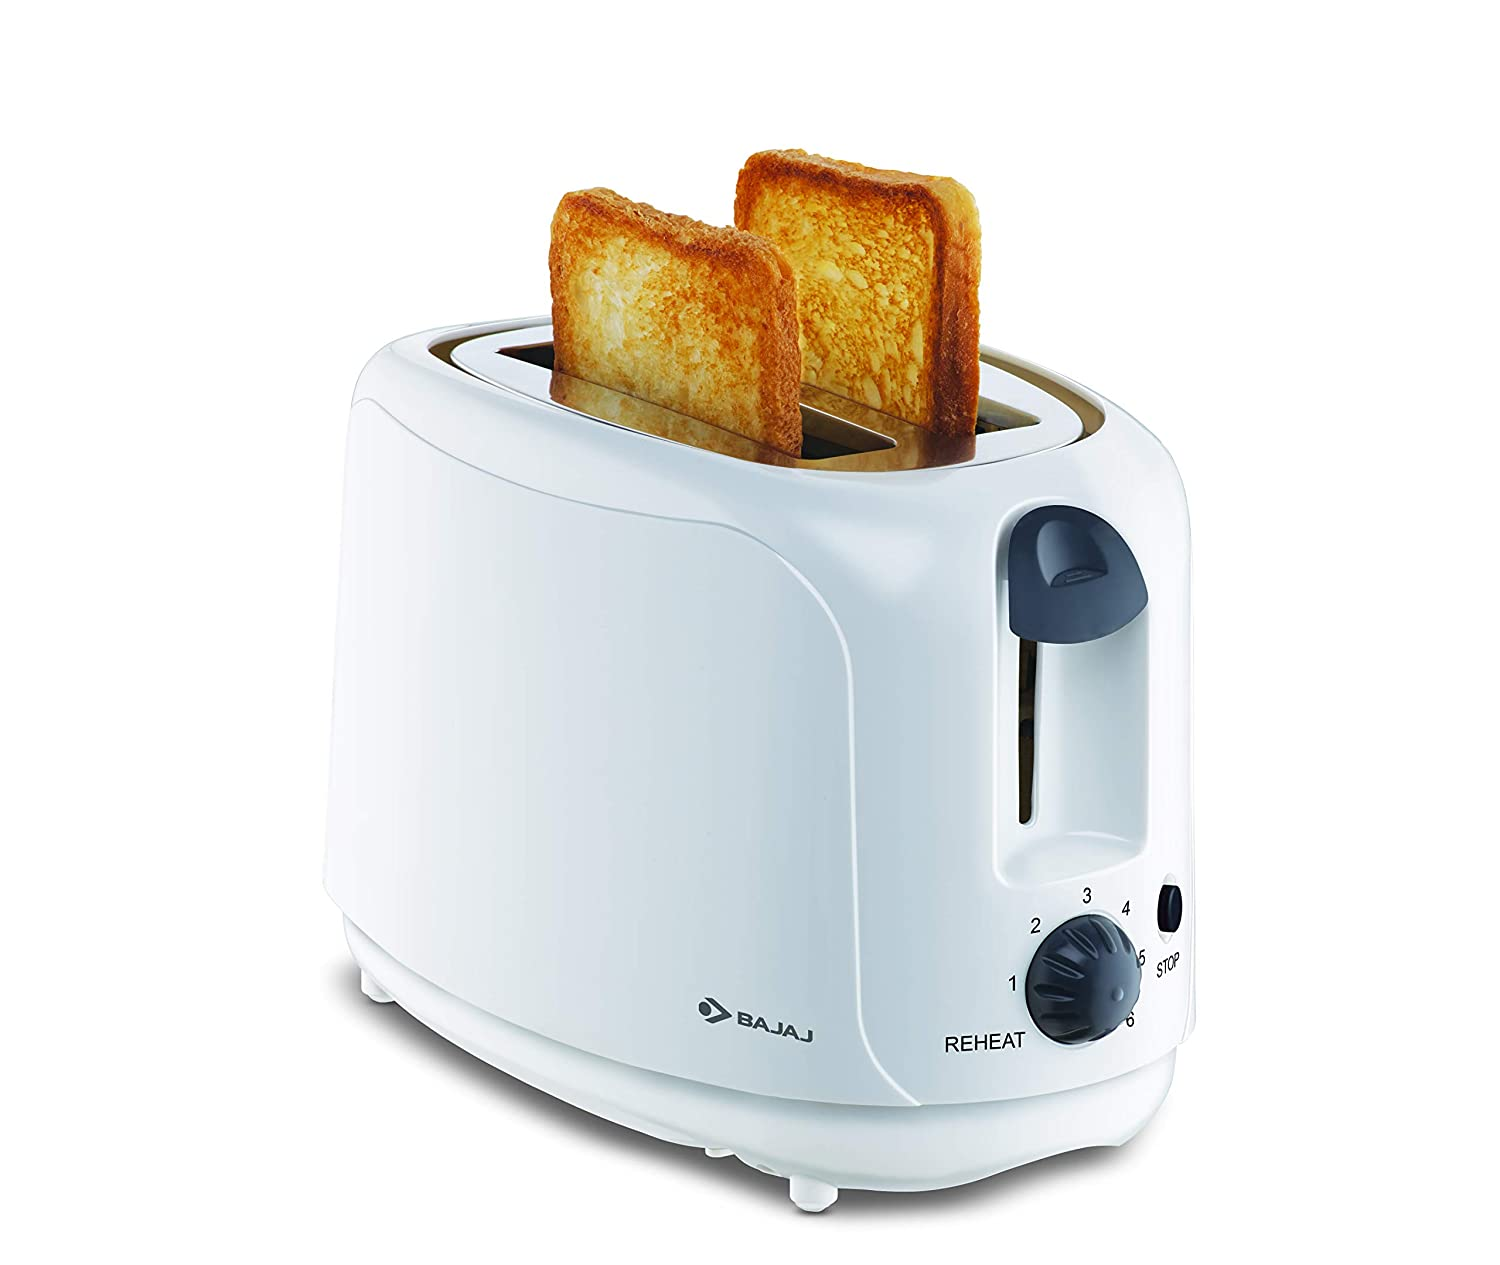 Bajaj ATX 4 750-Watt Pop-Up Toaster (MRP Rs 2000/-)